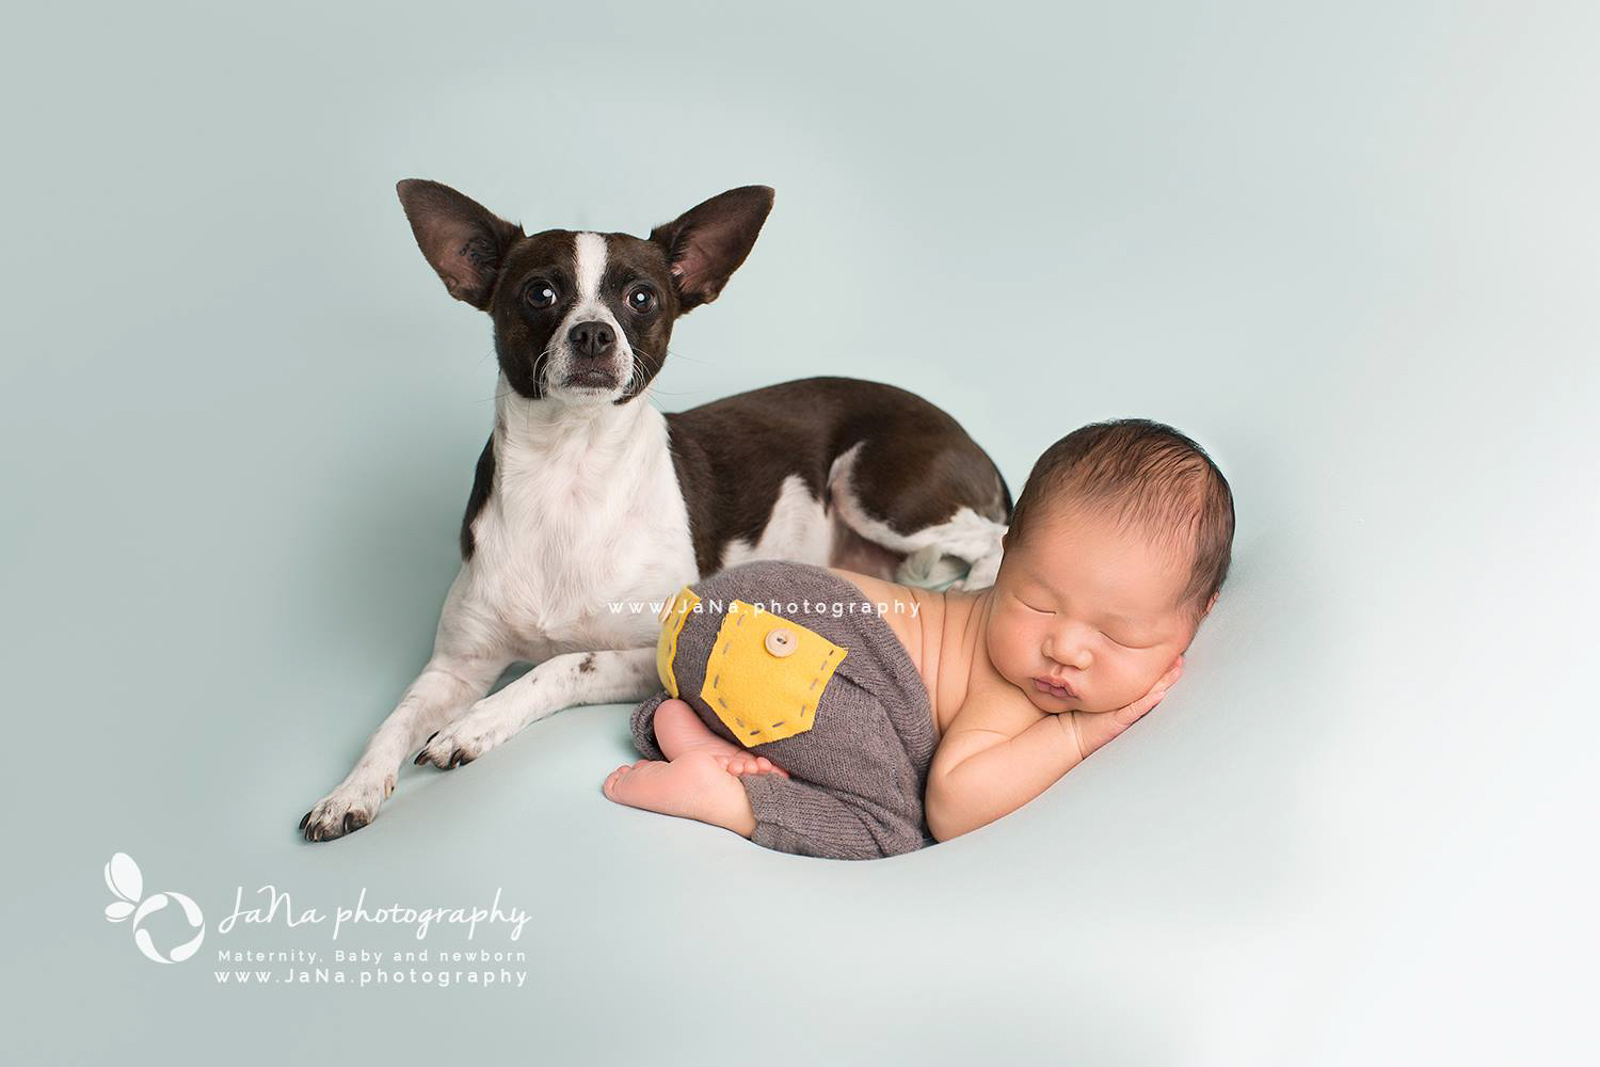 baby boy with dog in a blue background | jana photography